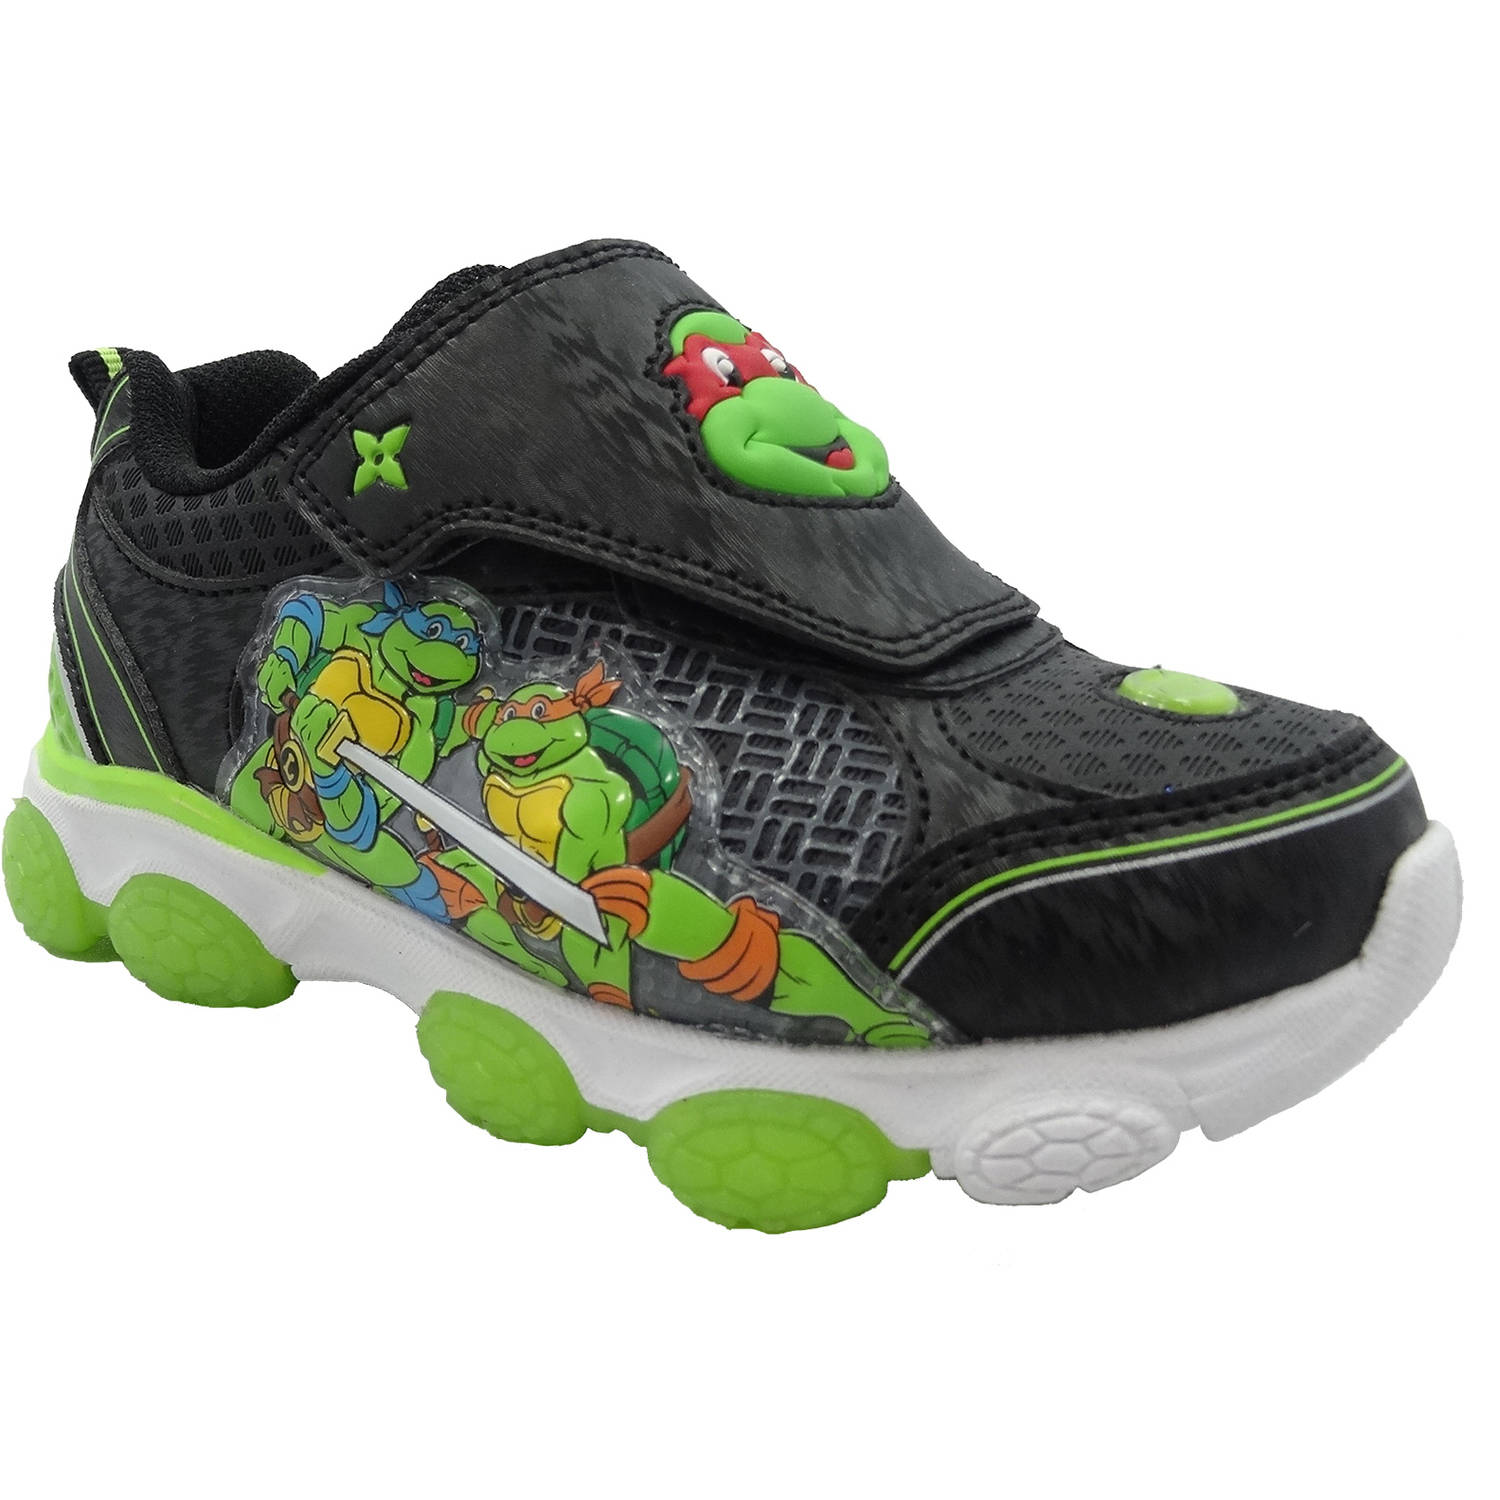 NEW Toddler Boys Tennis Shoes Size 7 Black TMNT Mutant Ninja Turtles Sneakers